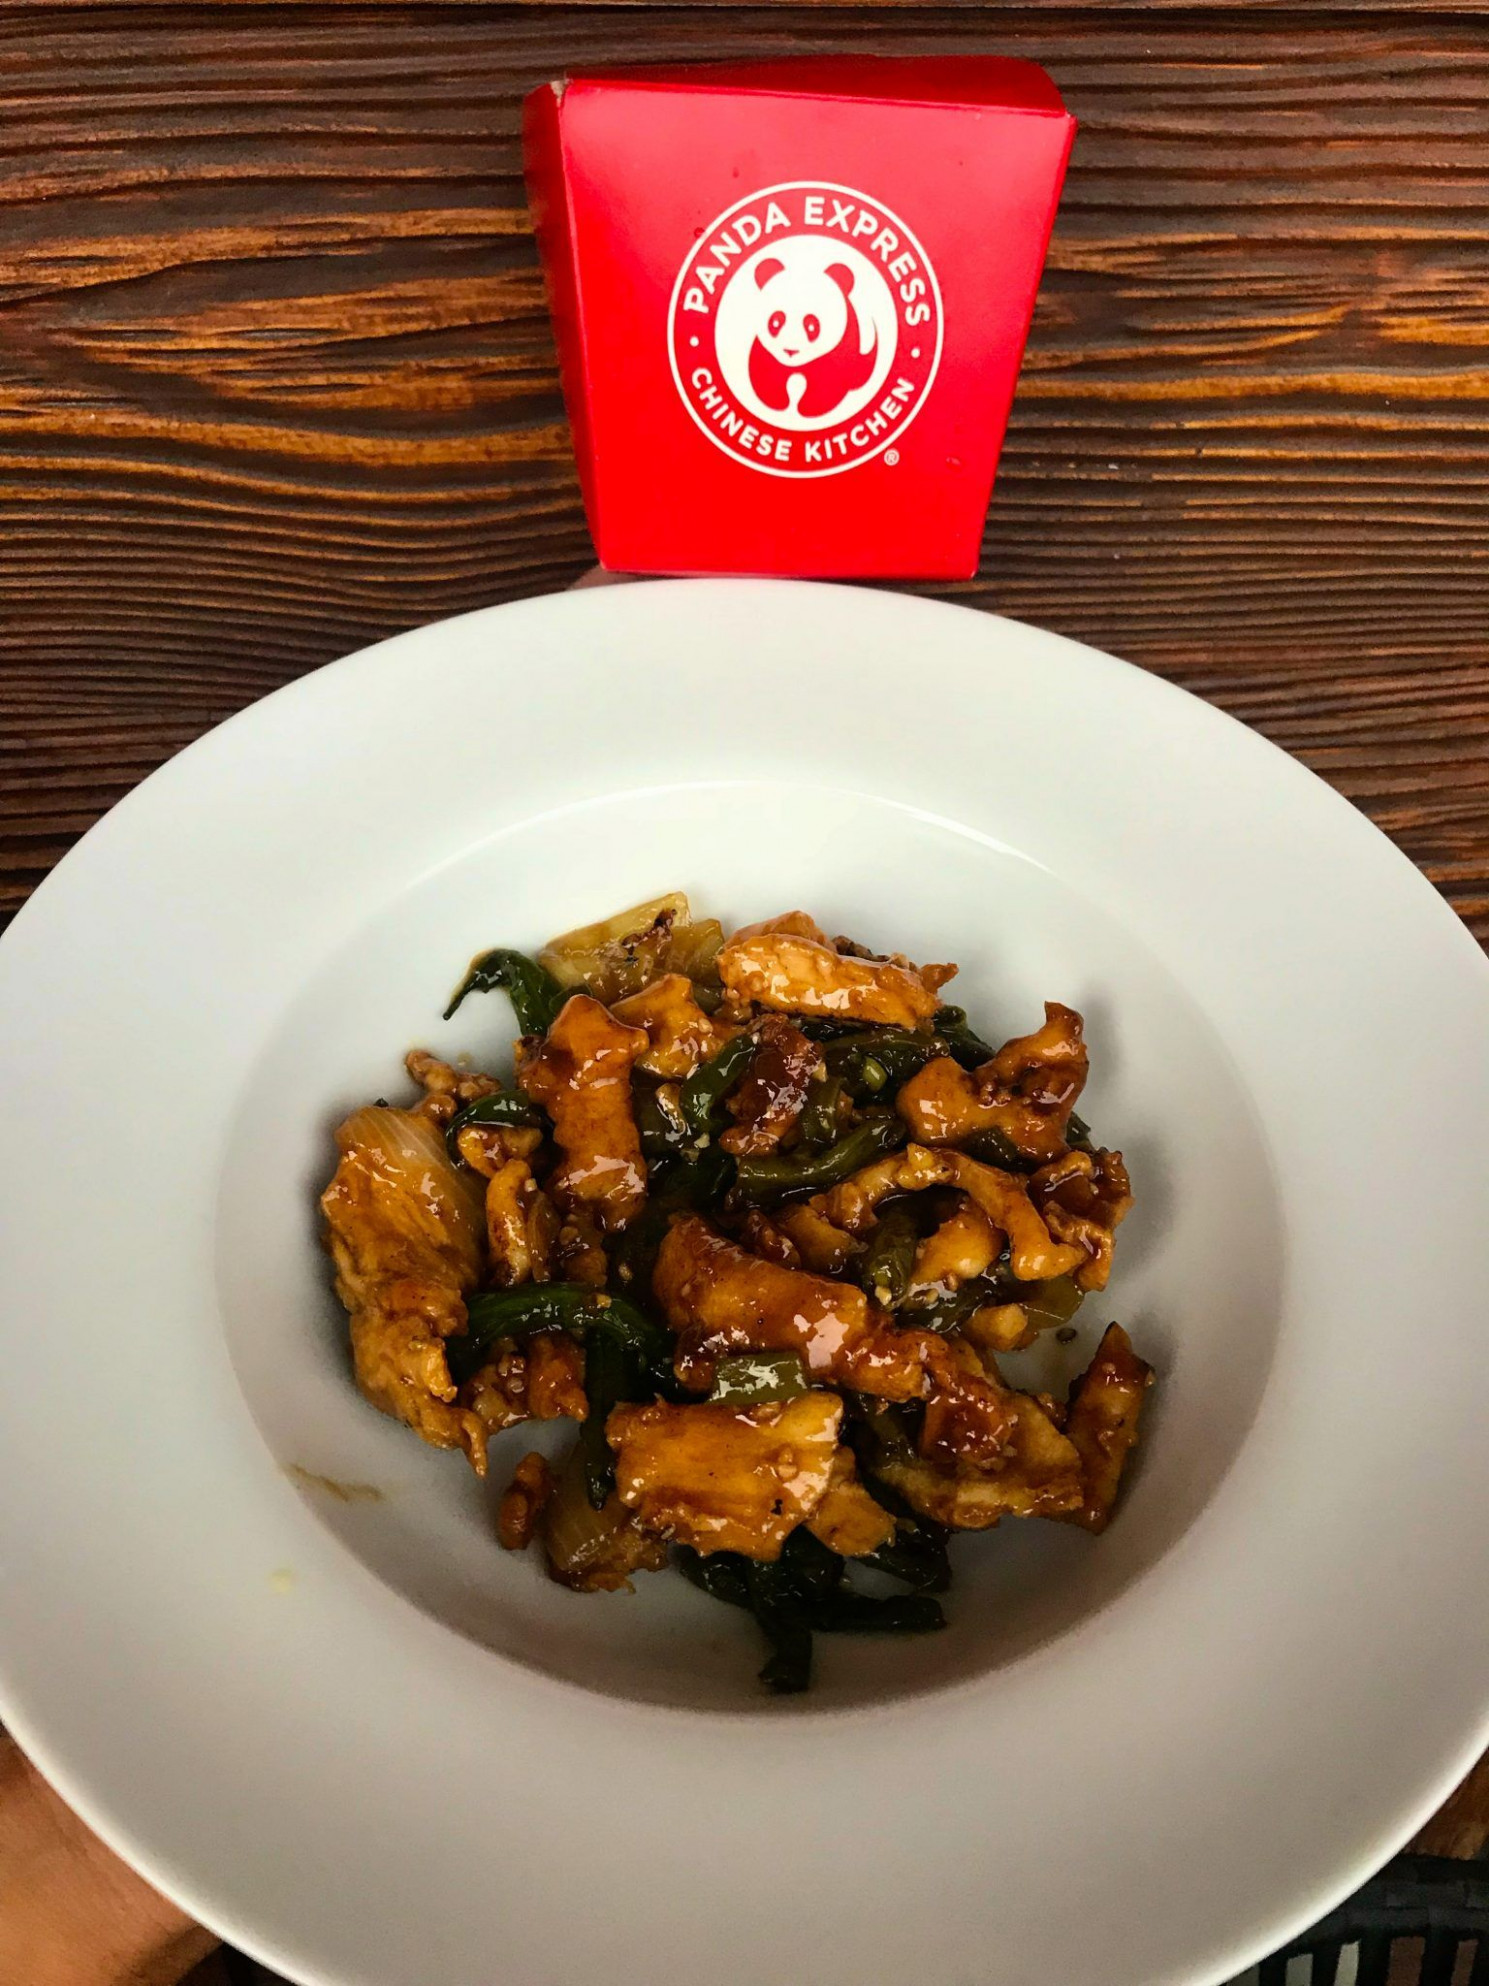 Keto at Panda Express: A Guide to Low Carb Panda Express ..